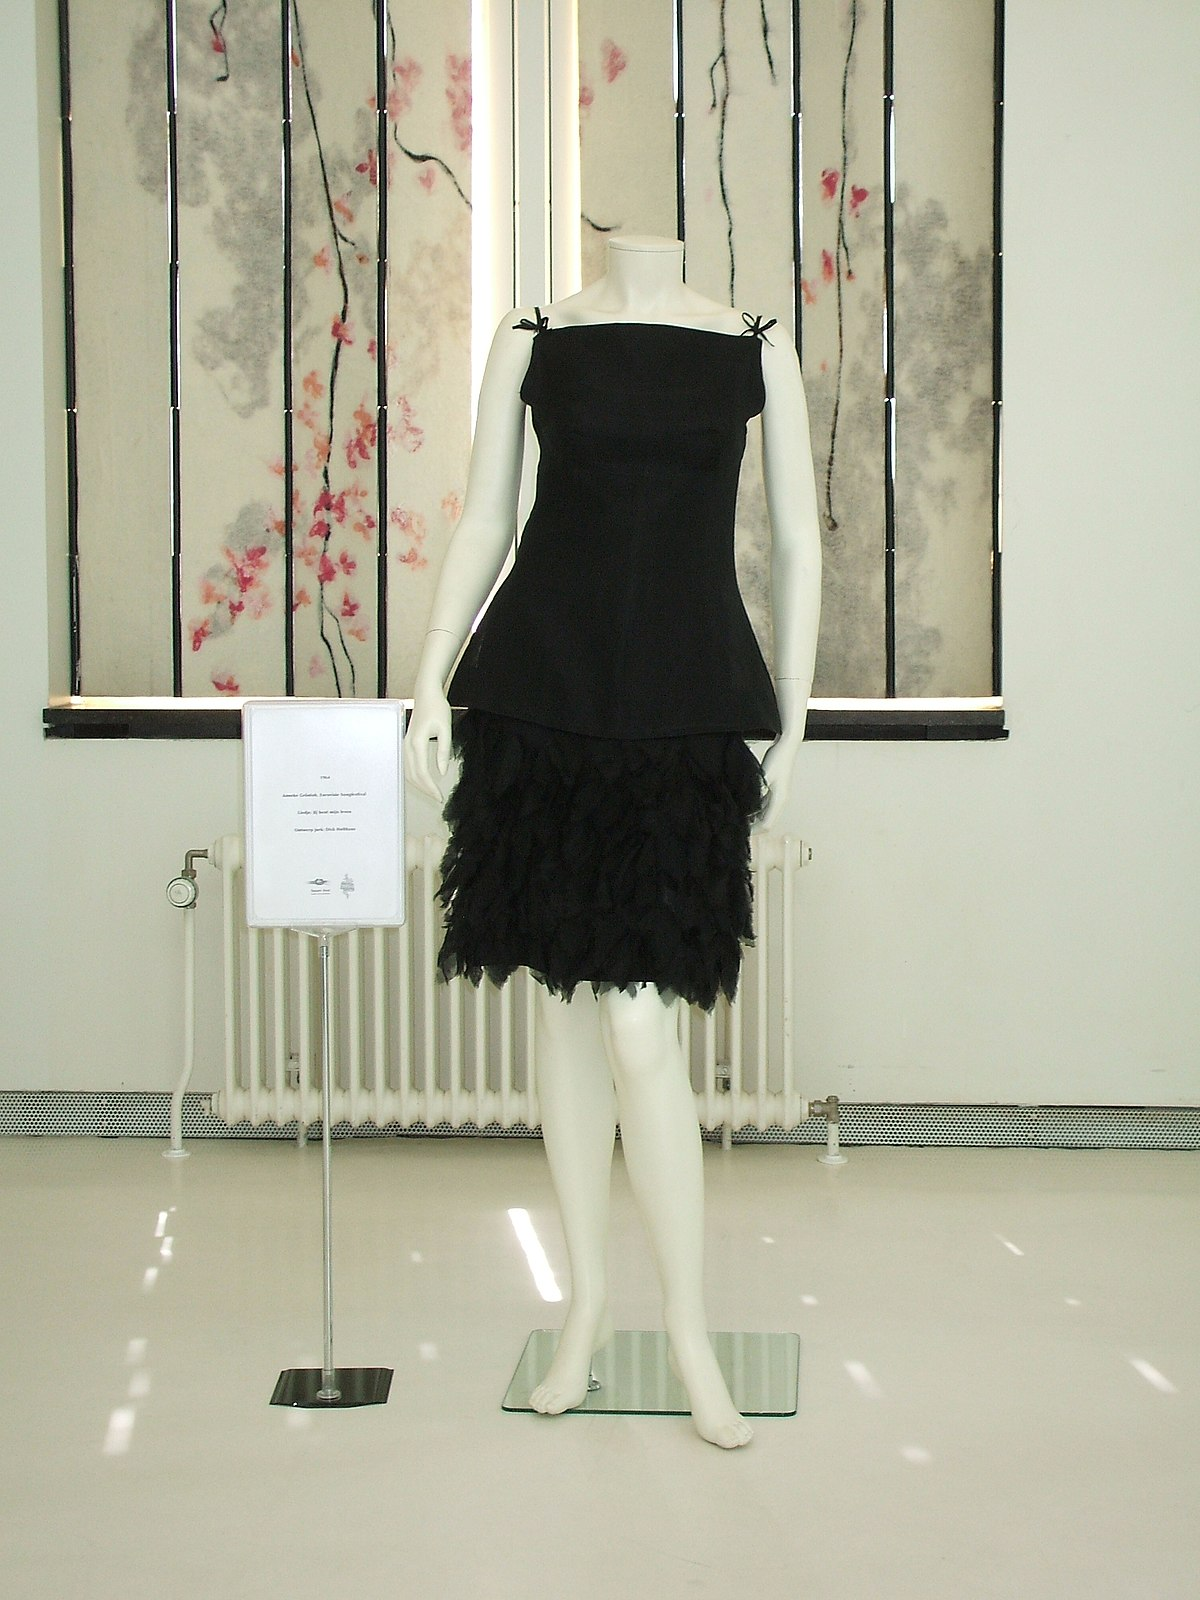 fcab3a8cb Little black dress - Wikipedia